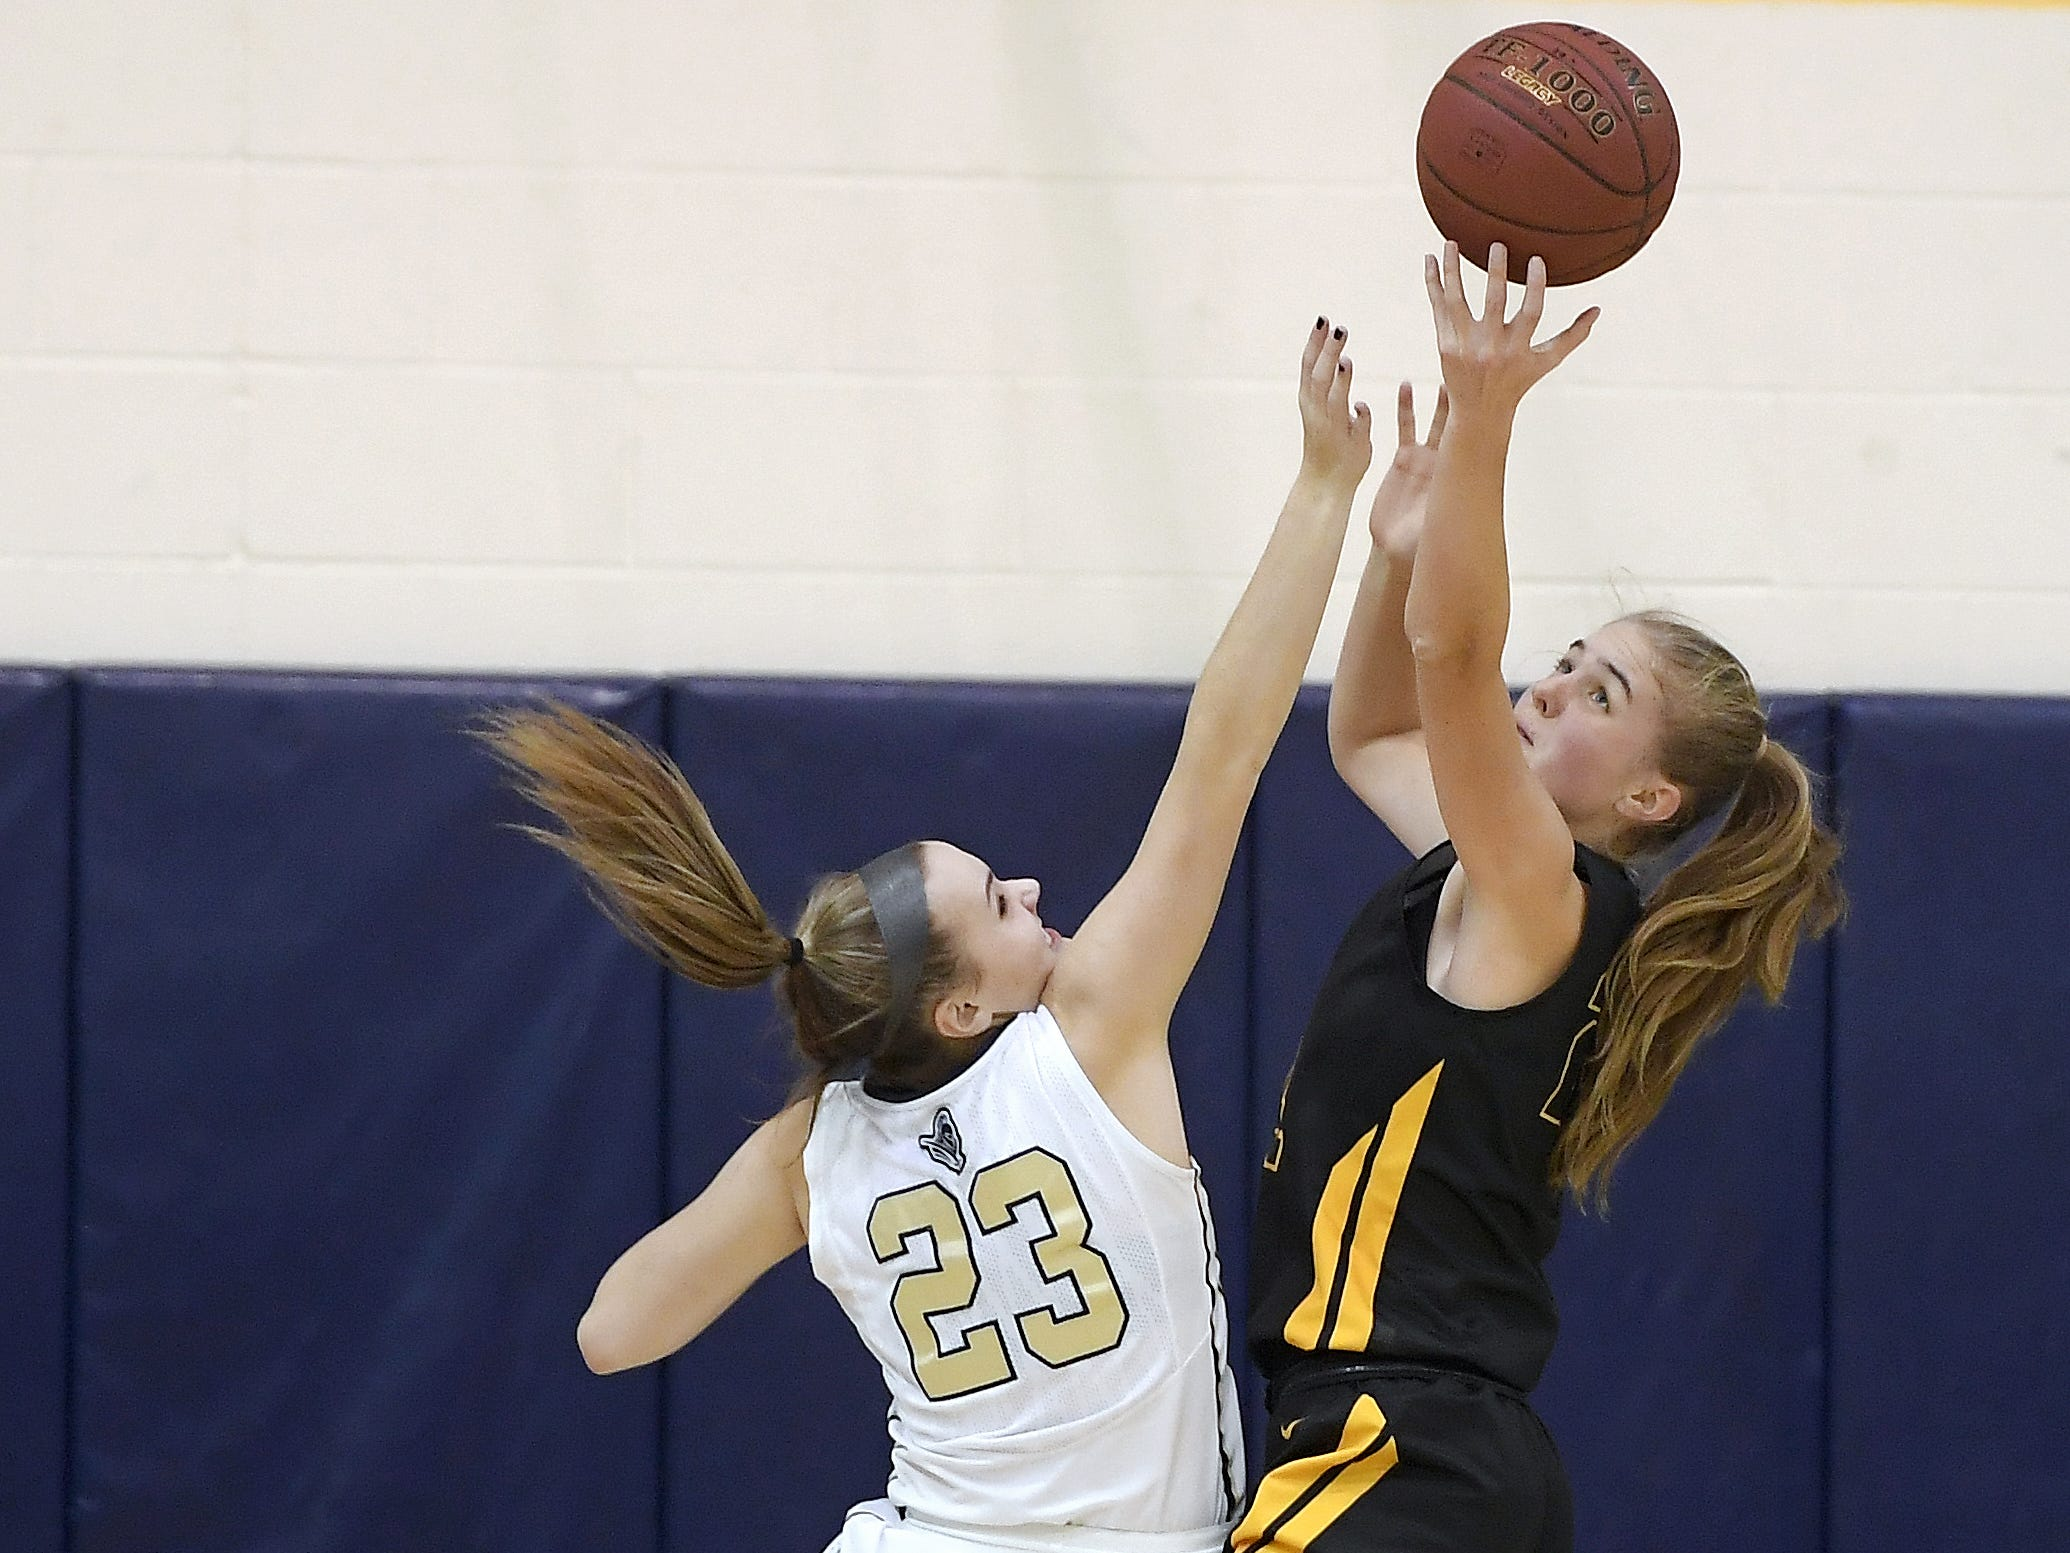 Pittsford Sutherland's Abby Creary, left, and HF-L's Teagan Kamm reach for a rebound during a regular season game played at Pittsford Sutherland High School on Thursday, Nov. 29, 2018. Pittsford Sutherland beat Honeoye Falls-Lima in overtime 53-47.